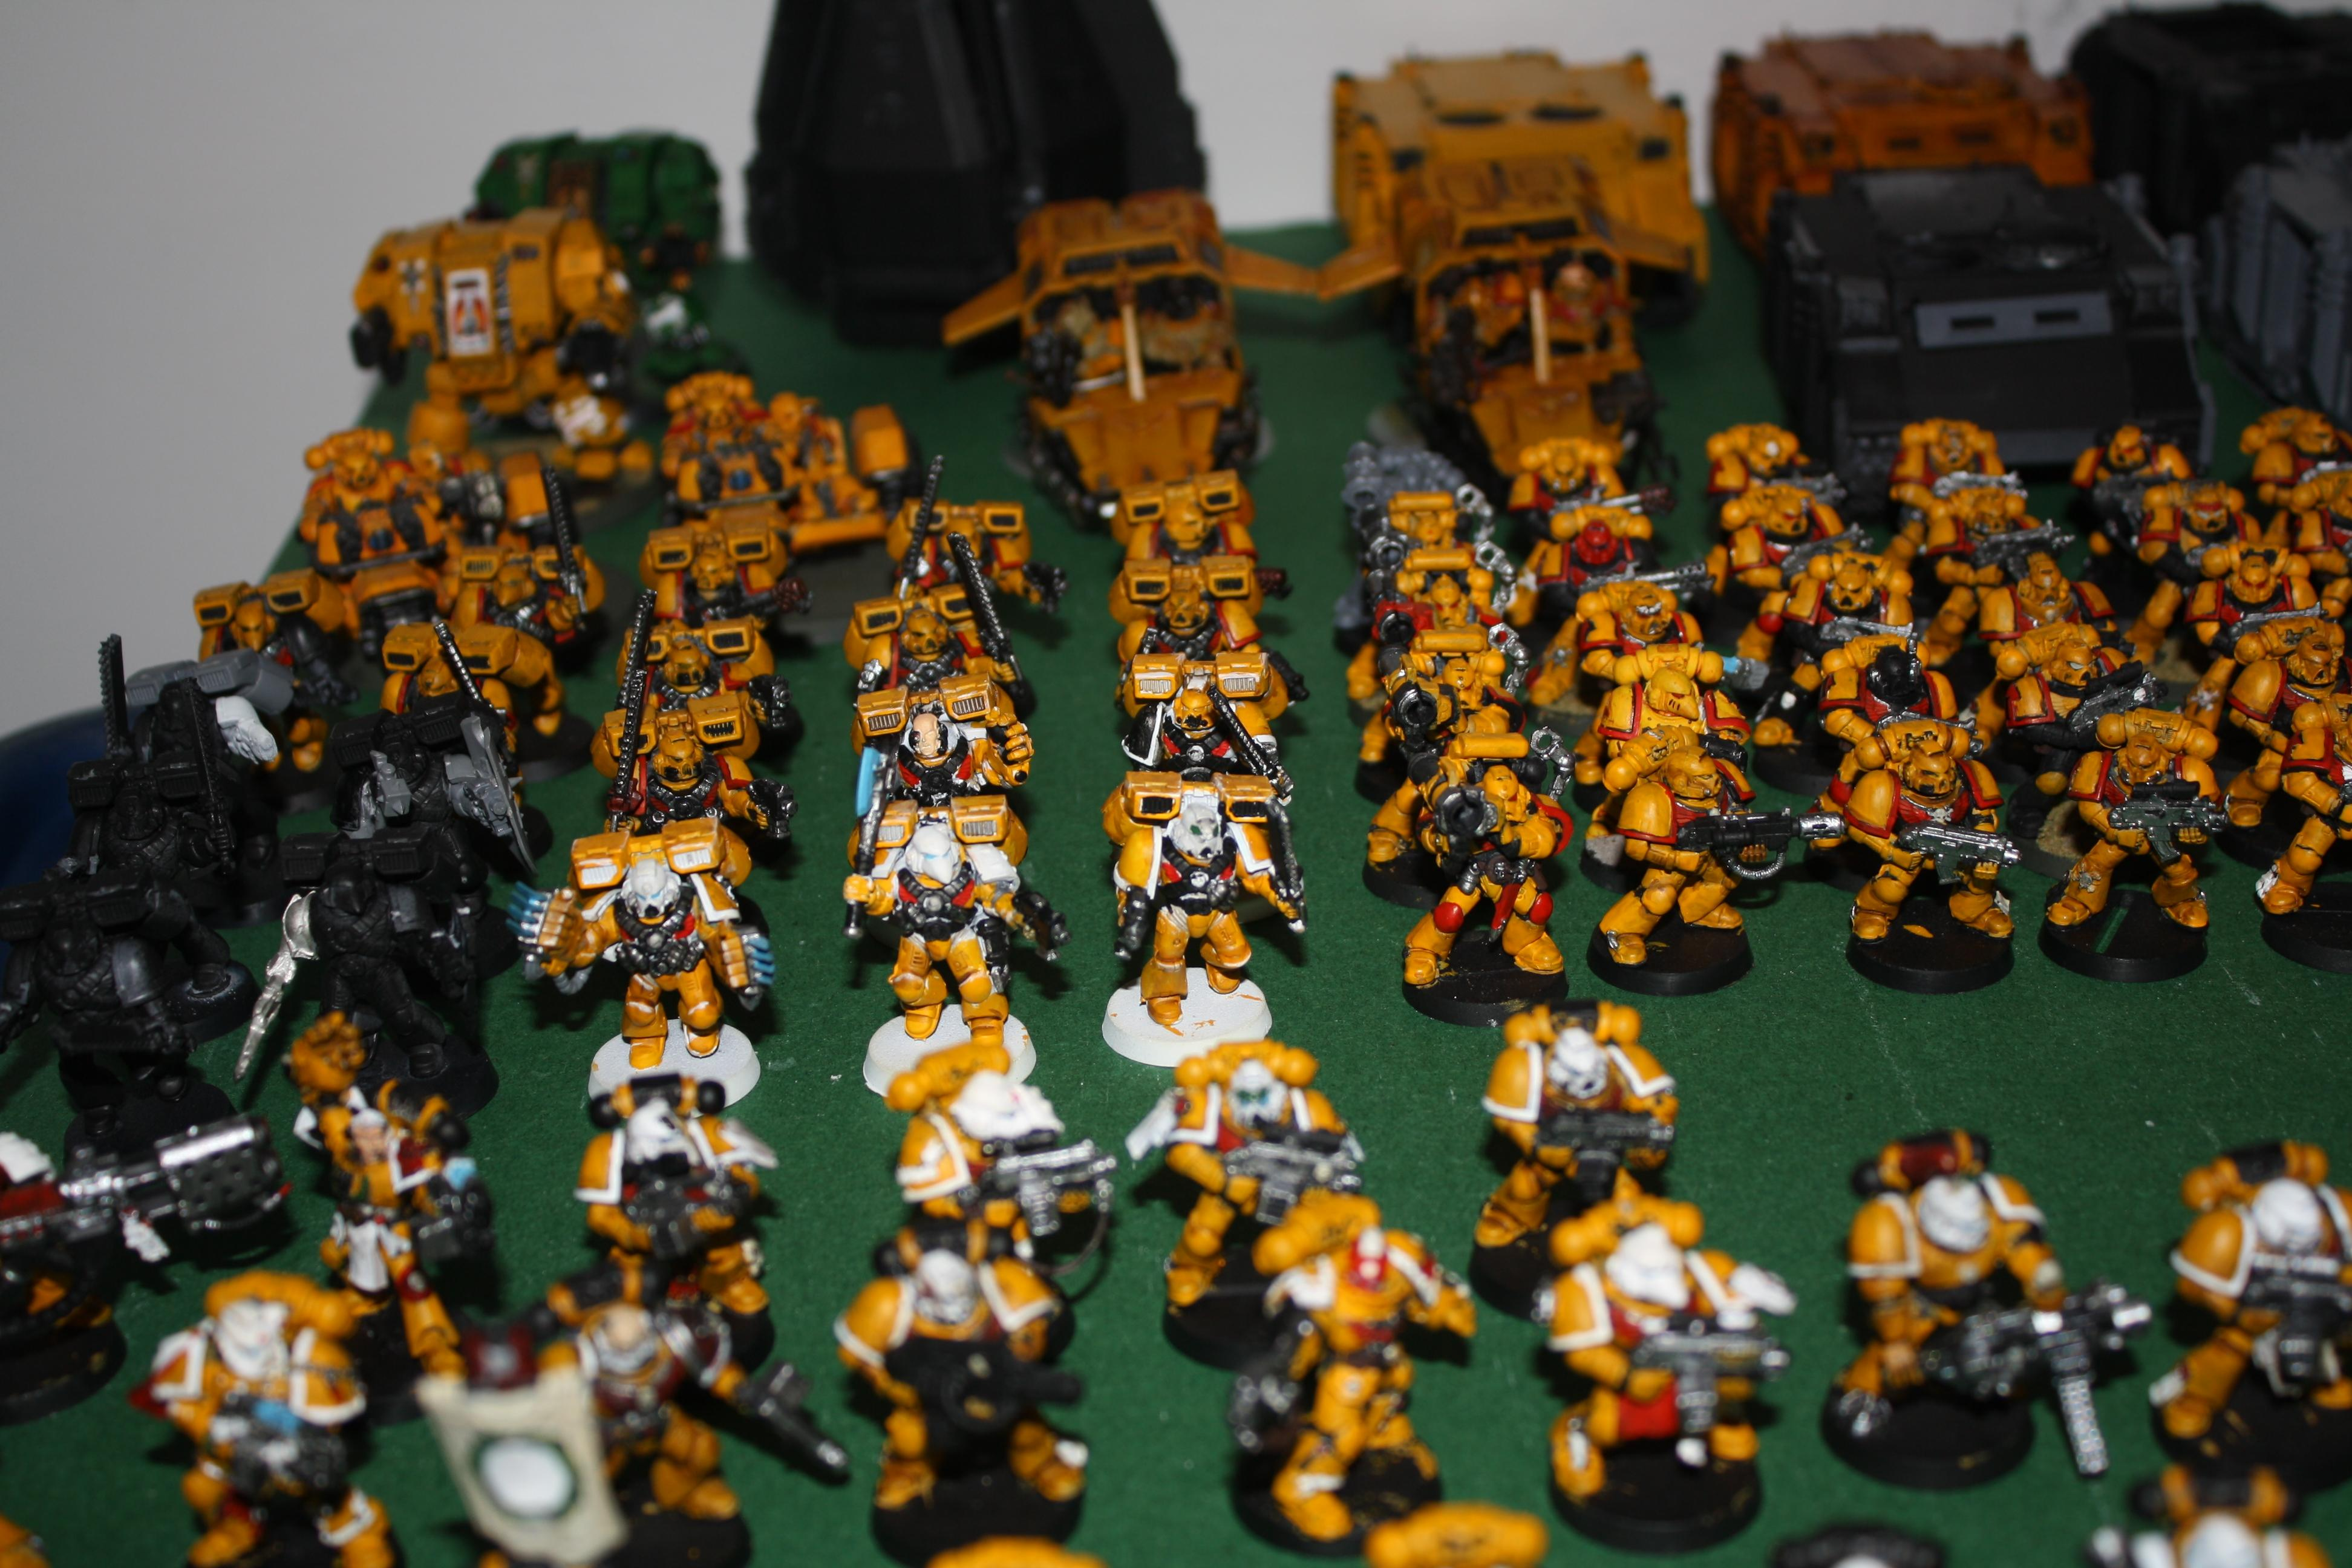 Army, If, Space Marines, Warhammer 40,000